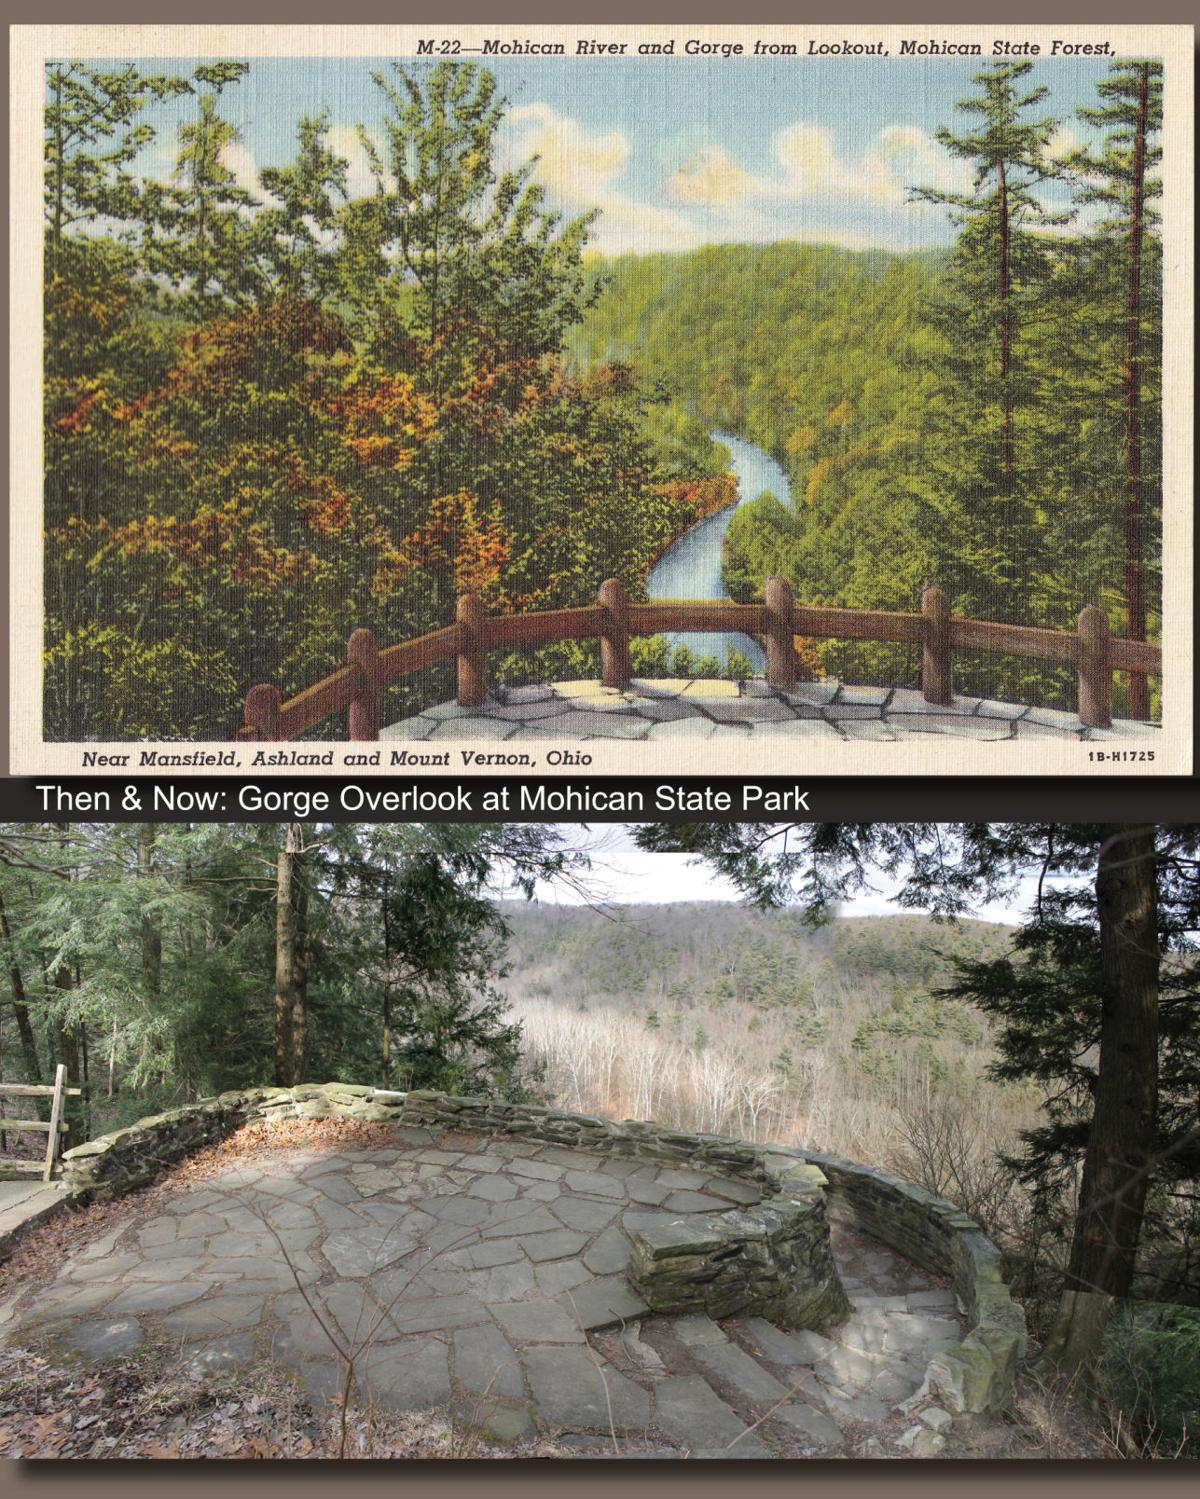 Then & Now: The Gorge Overlook at Mohican 1943